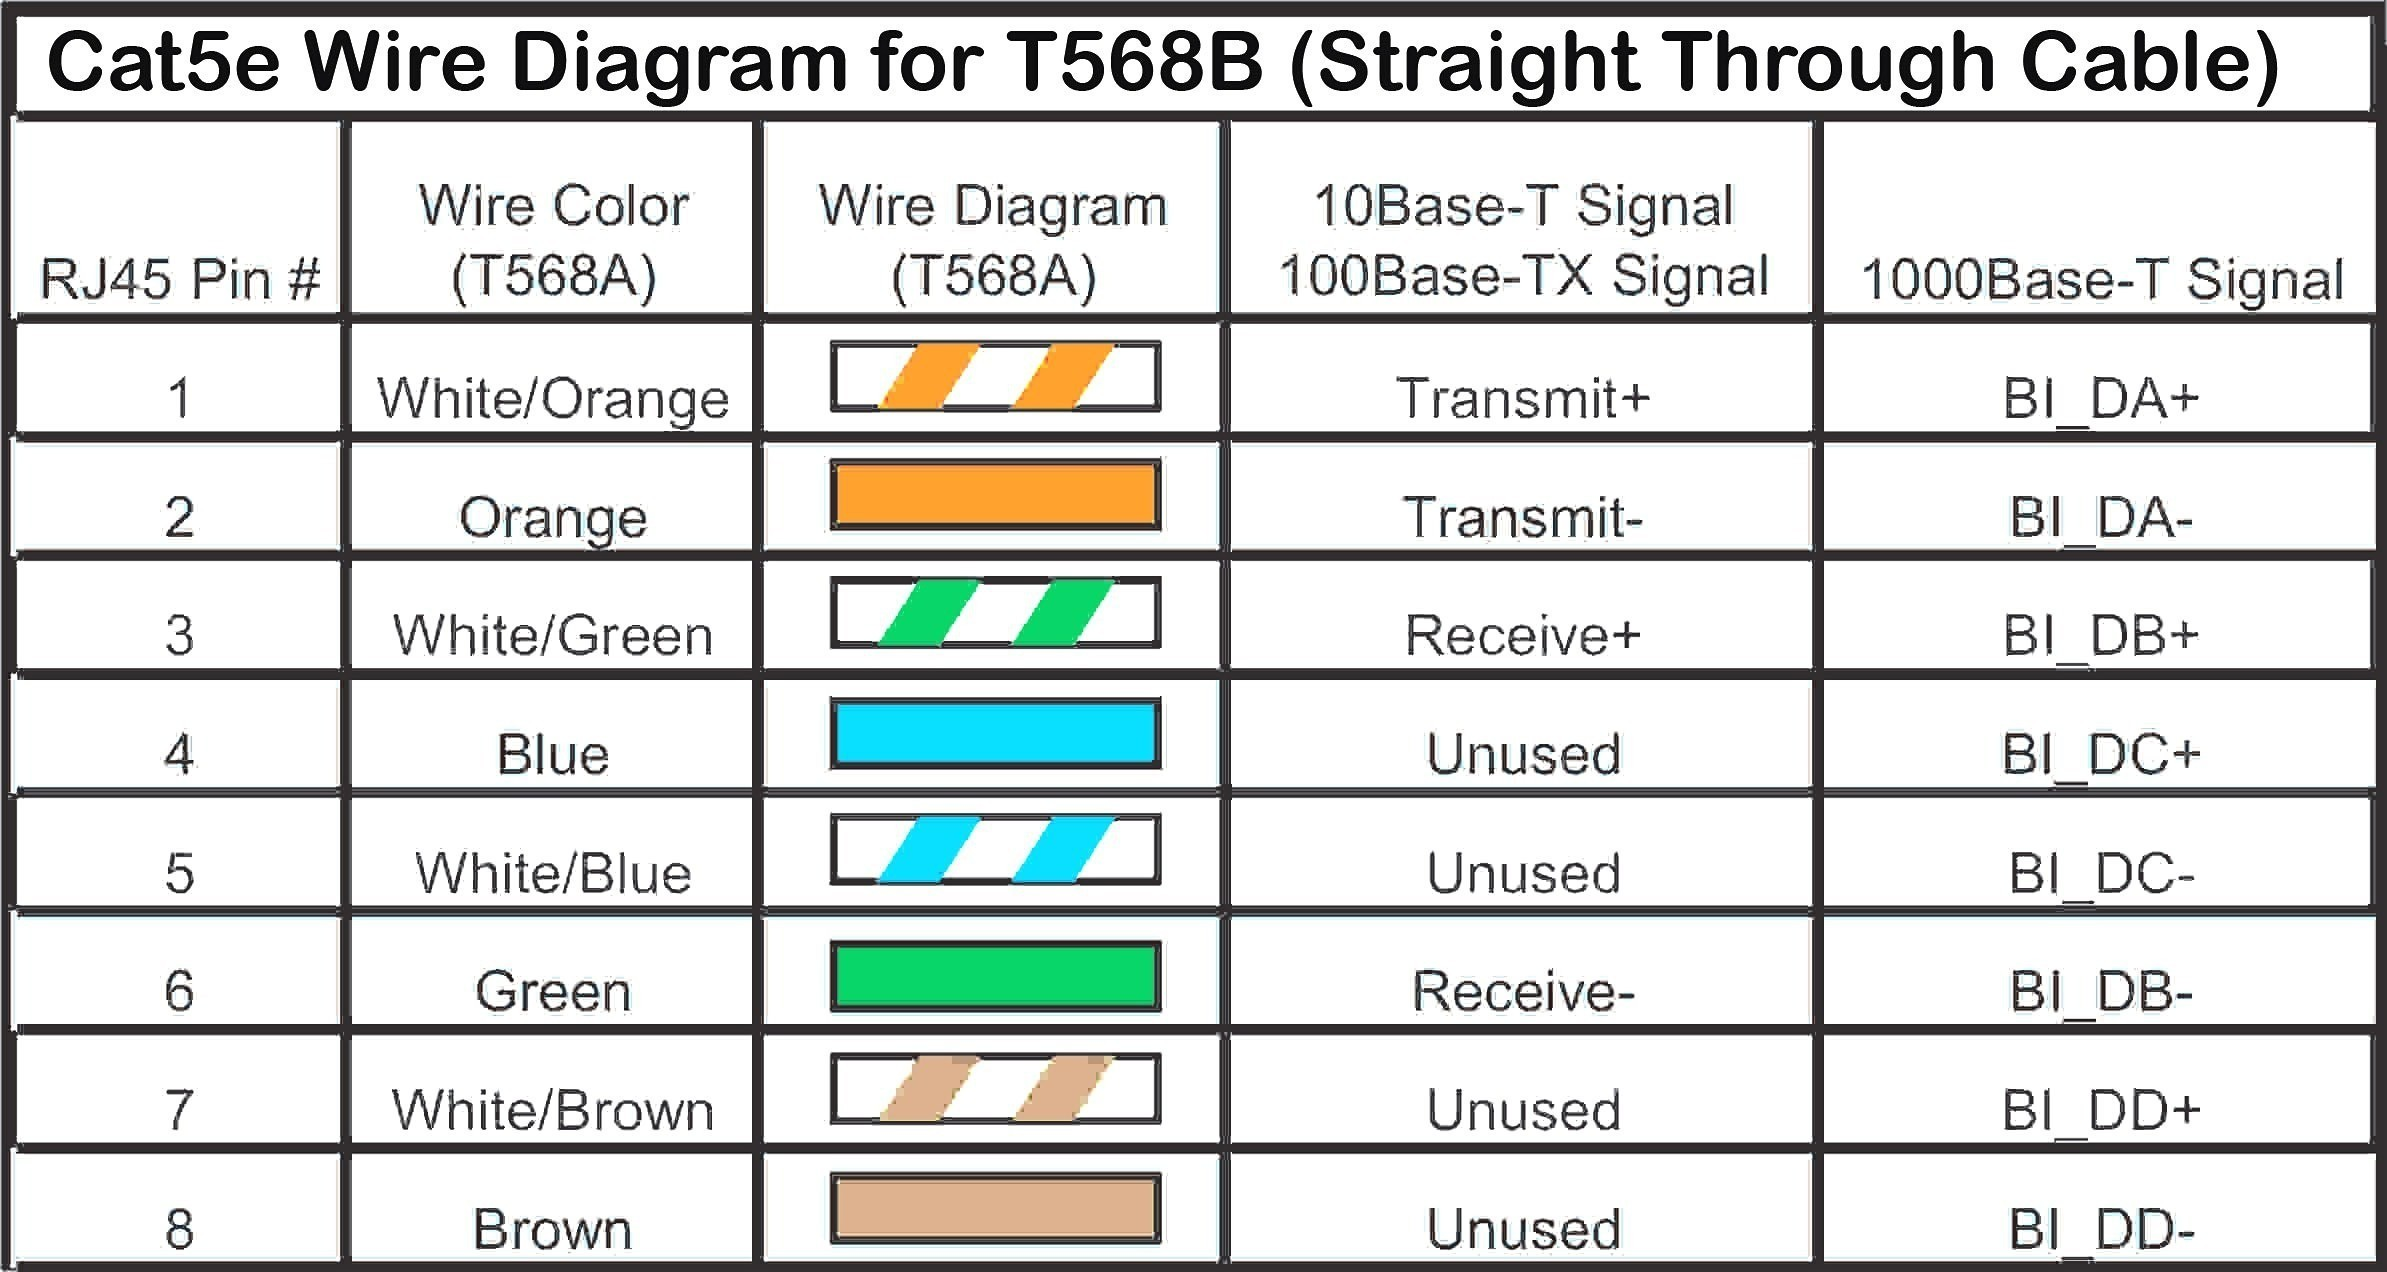 Cat5 B Wiring Diagram Crimp Cat 5 Wire Diagram Trusted Wiring Diagrams Of Cat5 B Wiring Diagram